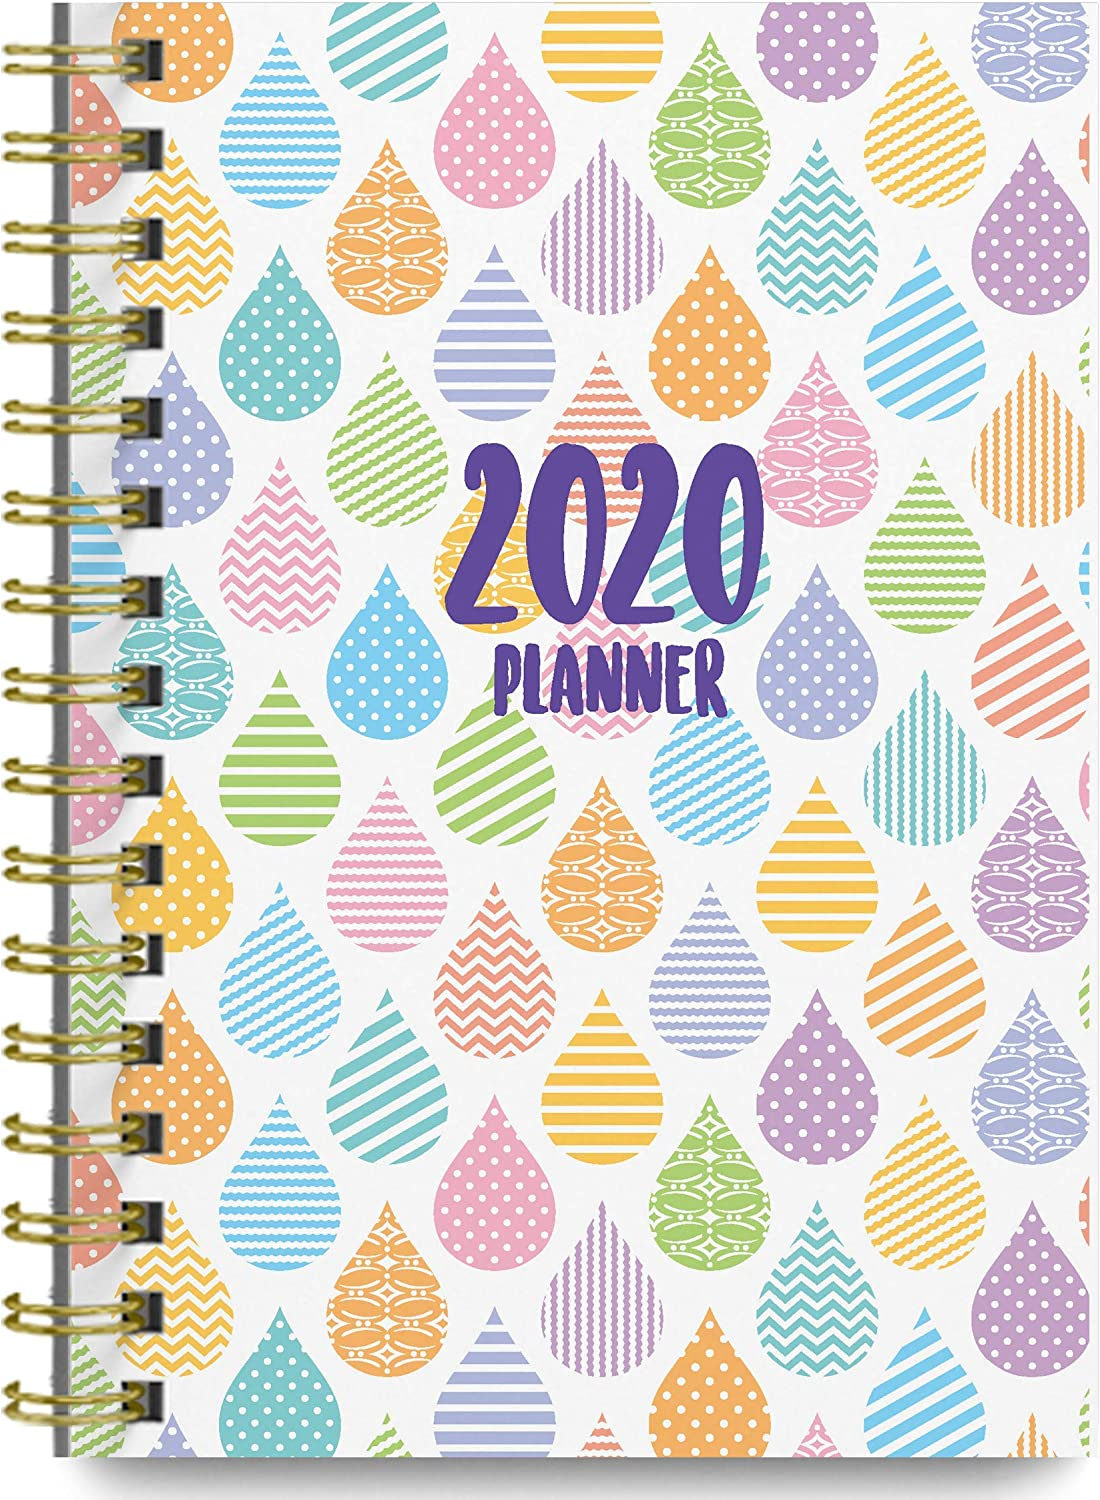 2020 Raindrops Soft Cover Academic Year Day Planner Book by Bright Day September 2019 to December 2020, Weekly Monthly Dated Agenda Spiral Bound Organizer, 6.25 x 8.25 Inch,